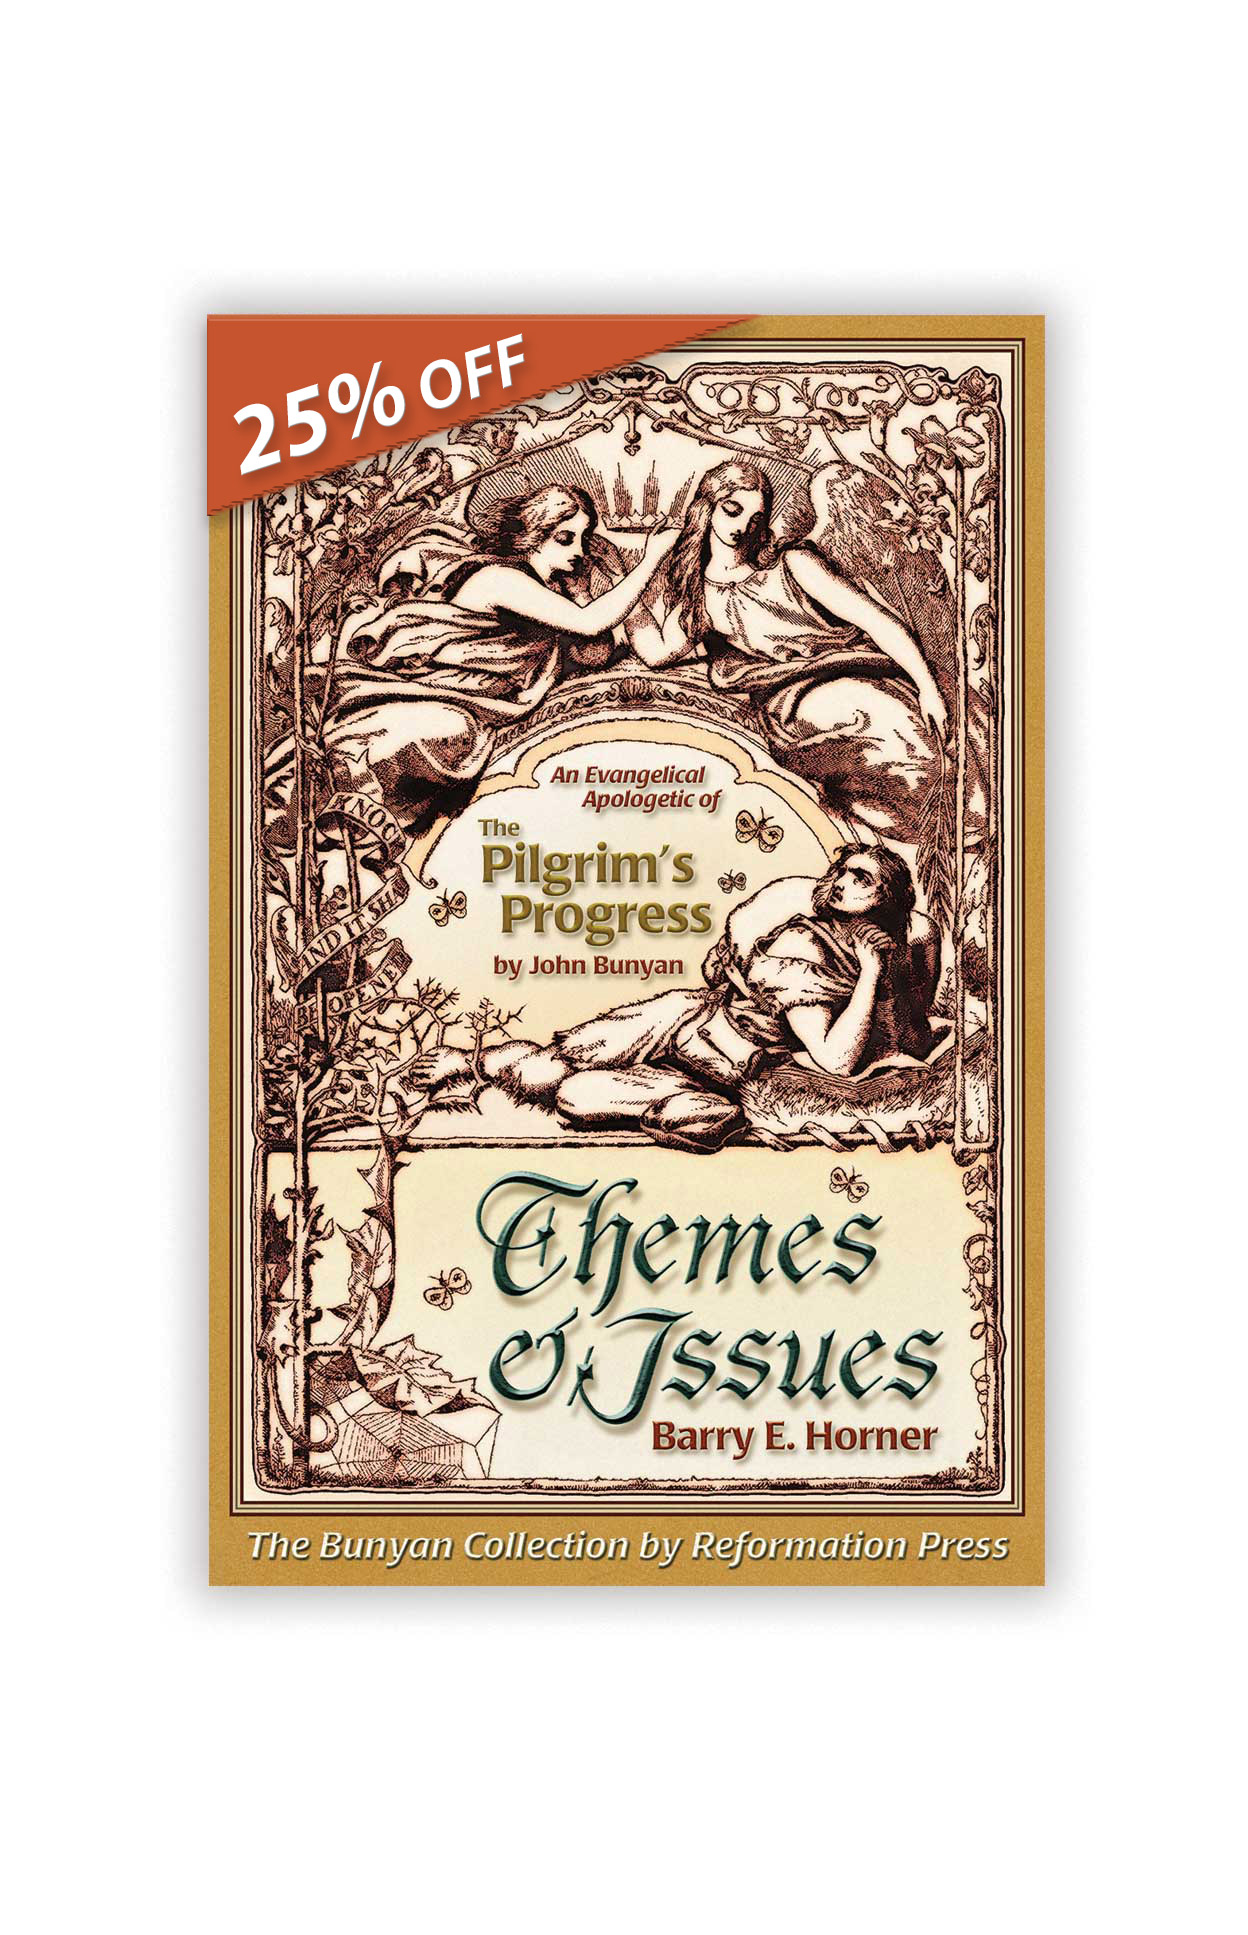 Storenvy coupon: The Themes and Issues of The Pilgrim's Progress